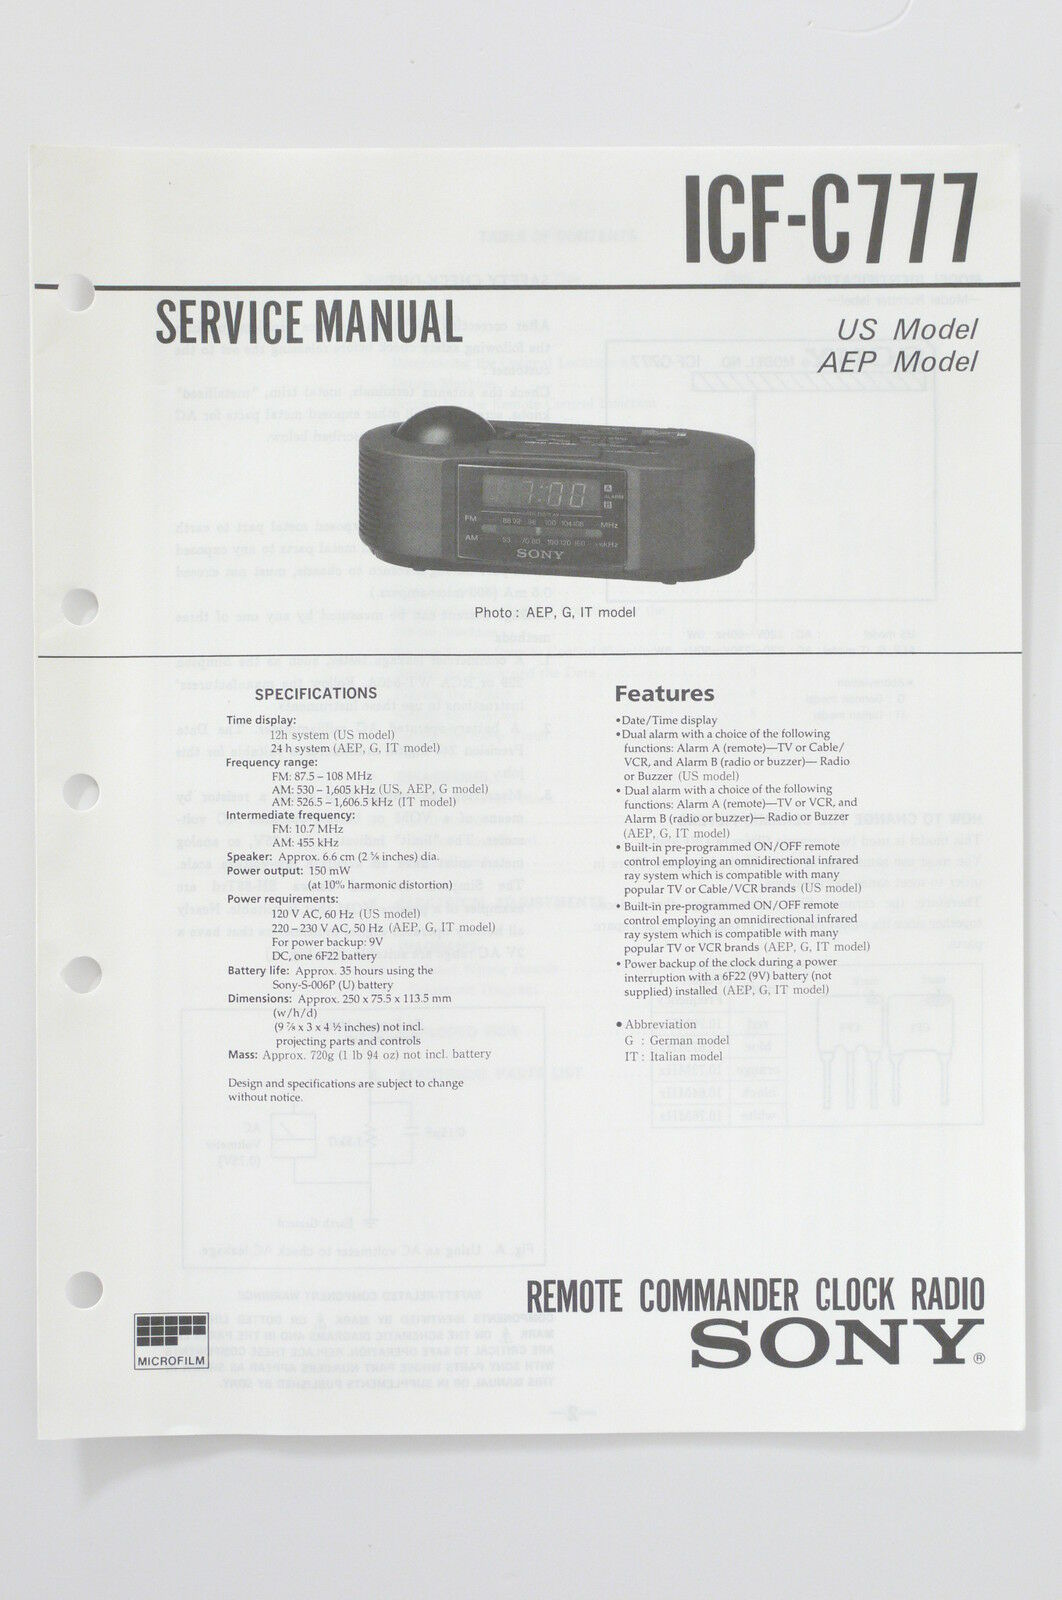 Sony Icf C777 Original Clock Radio Service Manual Guide Wiring Diagram 1 Of 1only Available